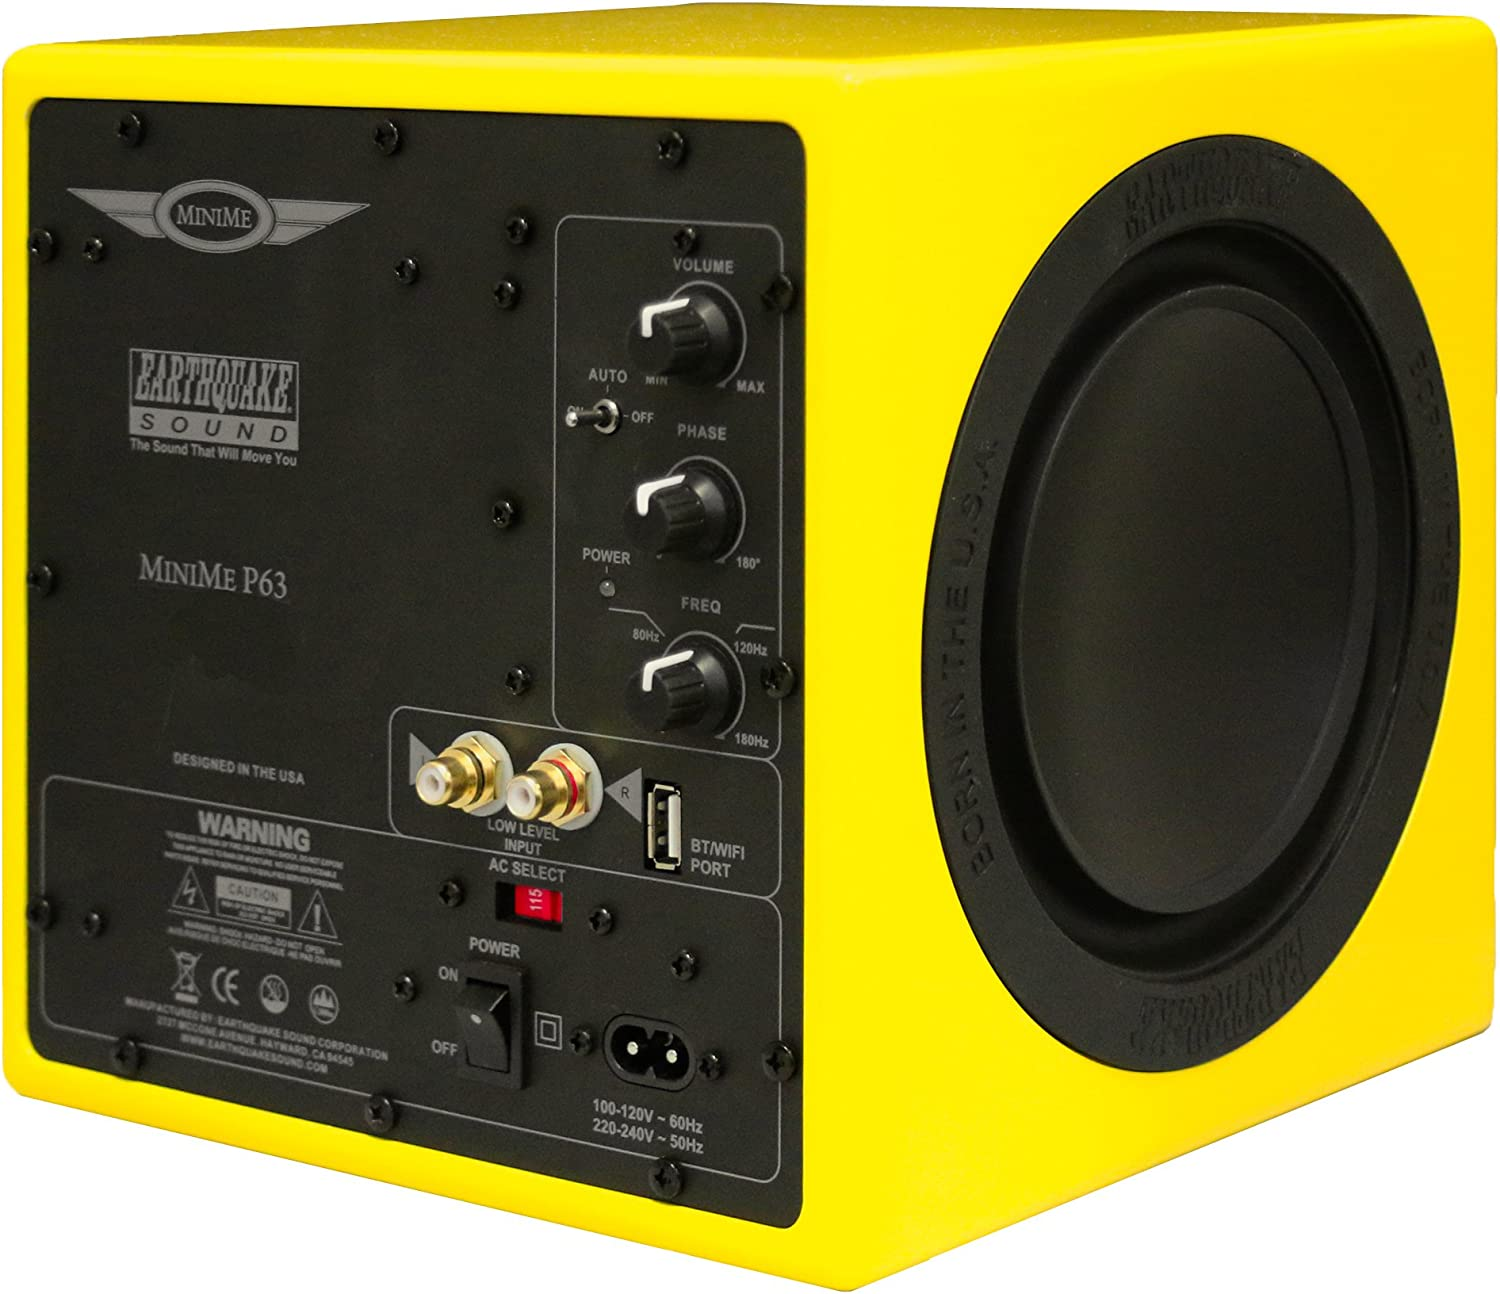 Earthquake Sound MiniMe-P63 Compact 6.5-inch Powered Subwoofer with Dual Passive Radiators, Yellow